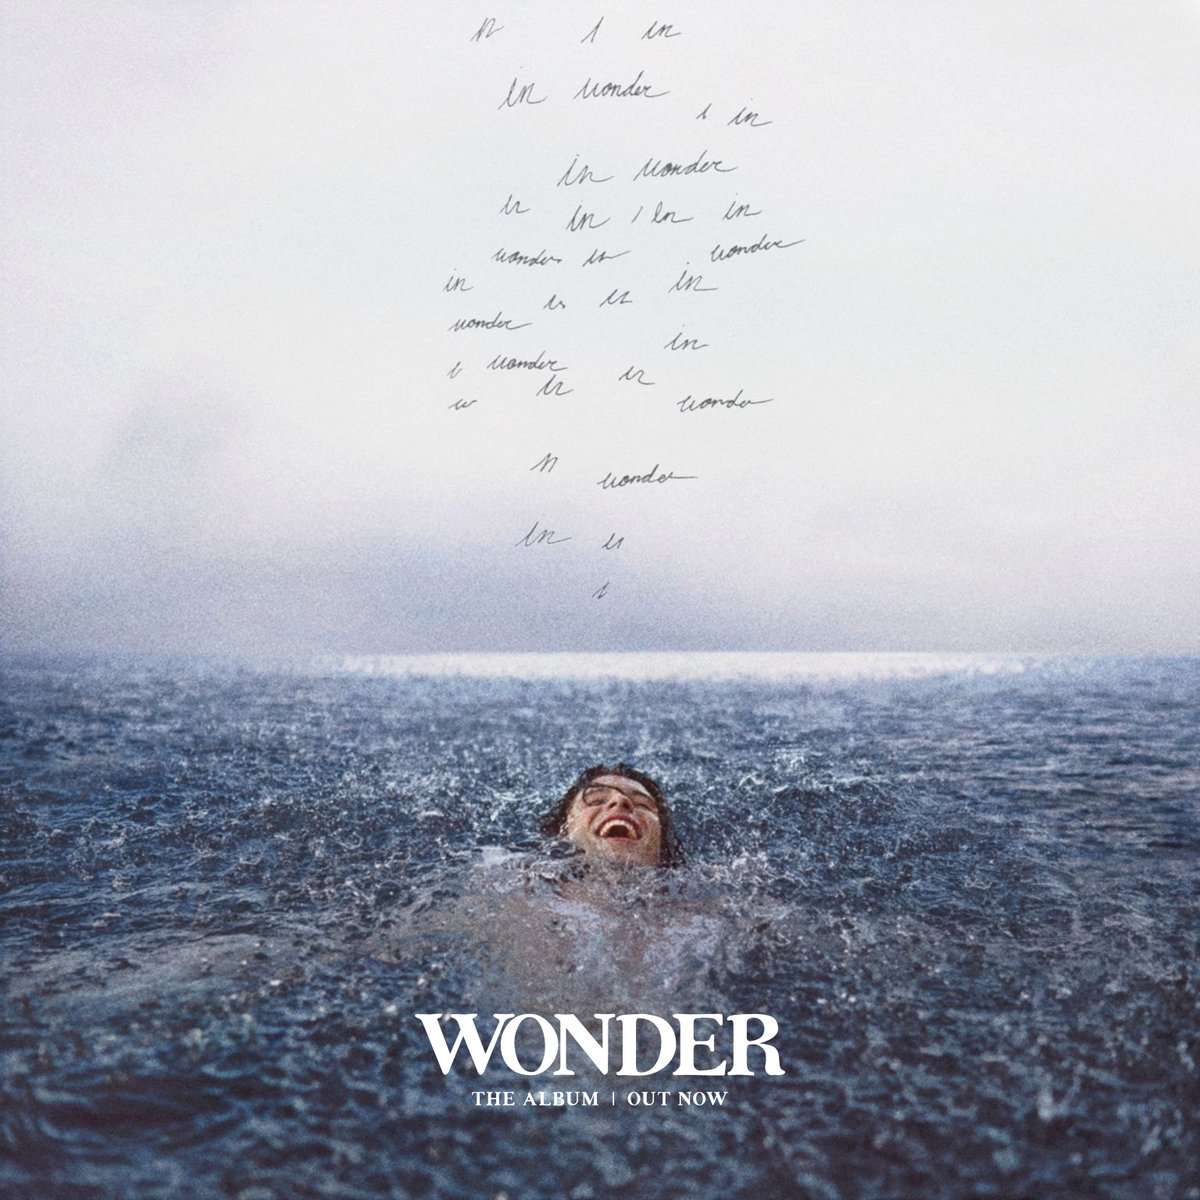 Replying to @ShawnMendes: #WONDER the album is out now 🖤